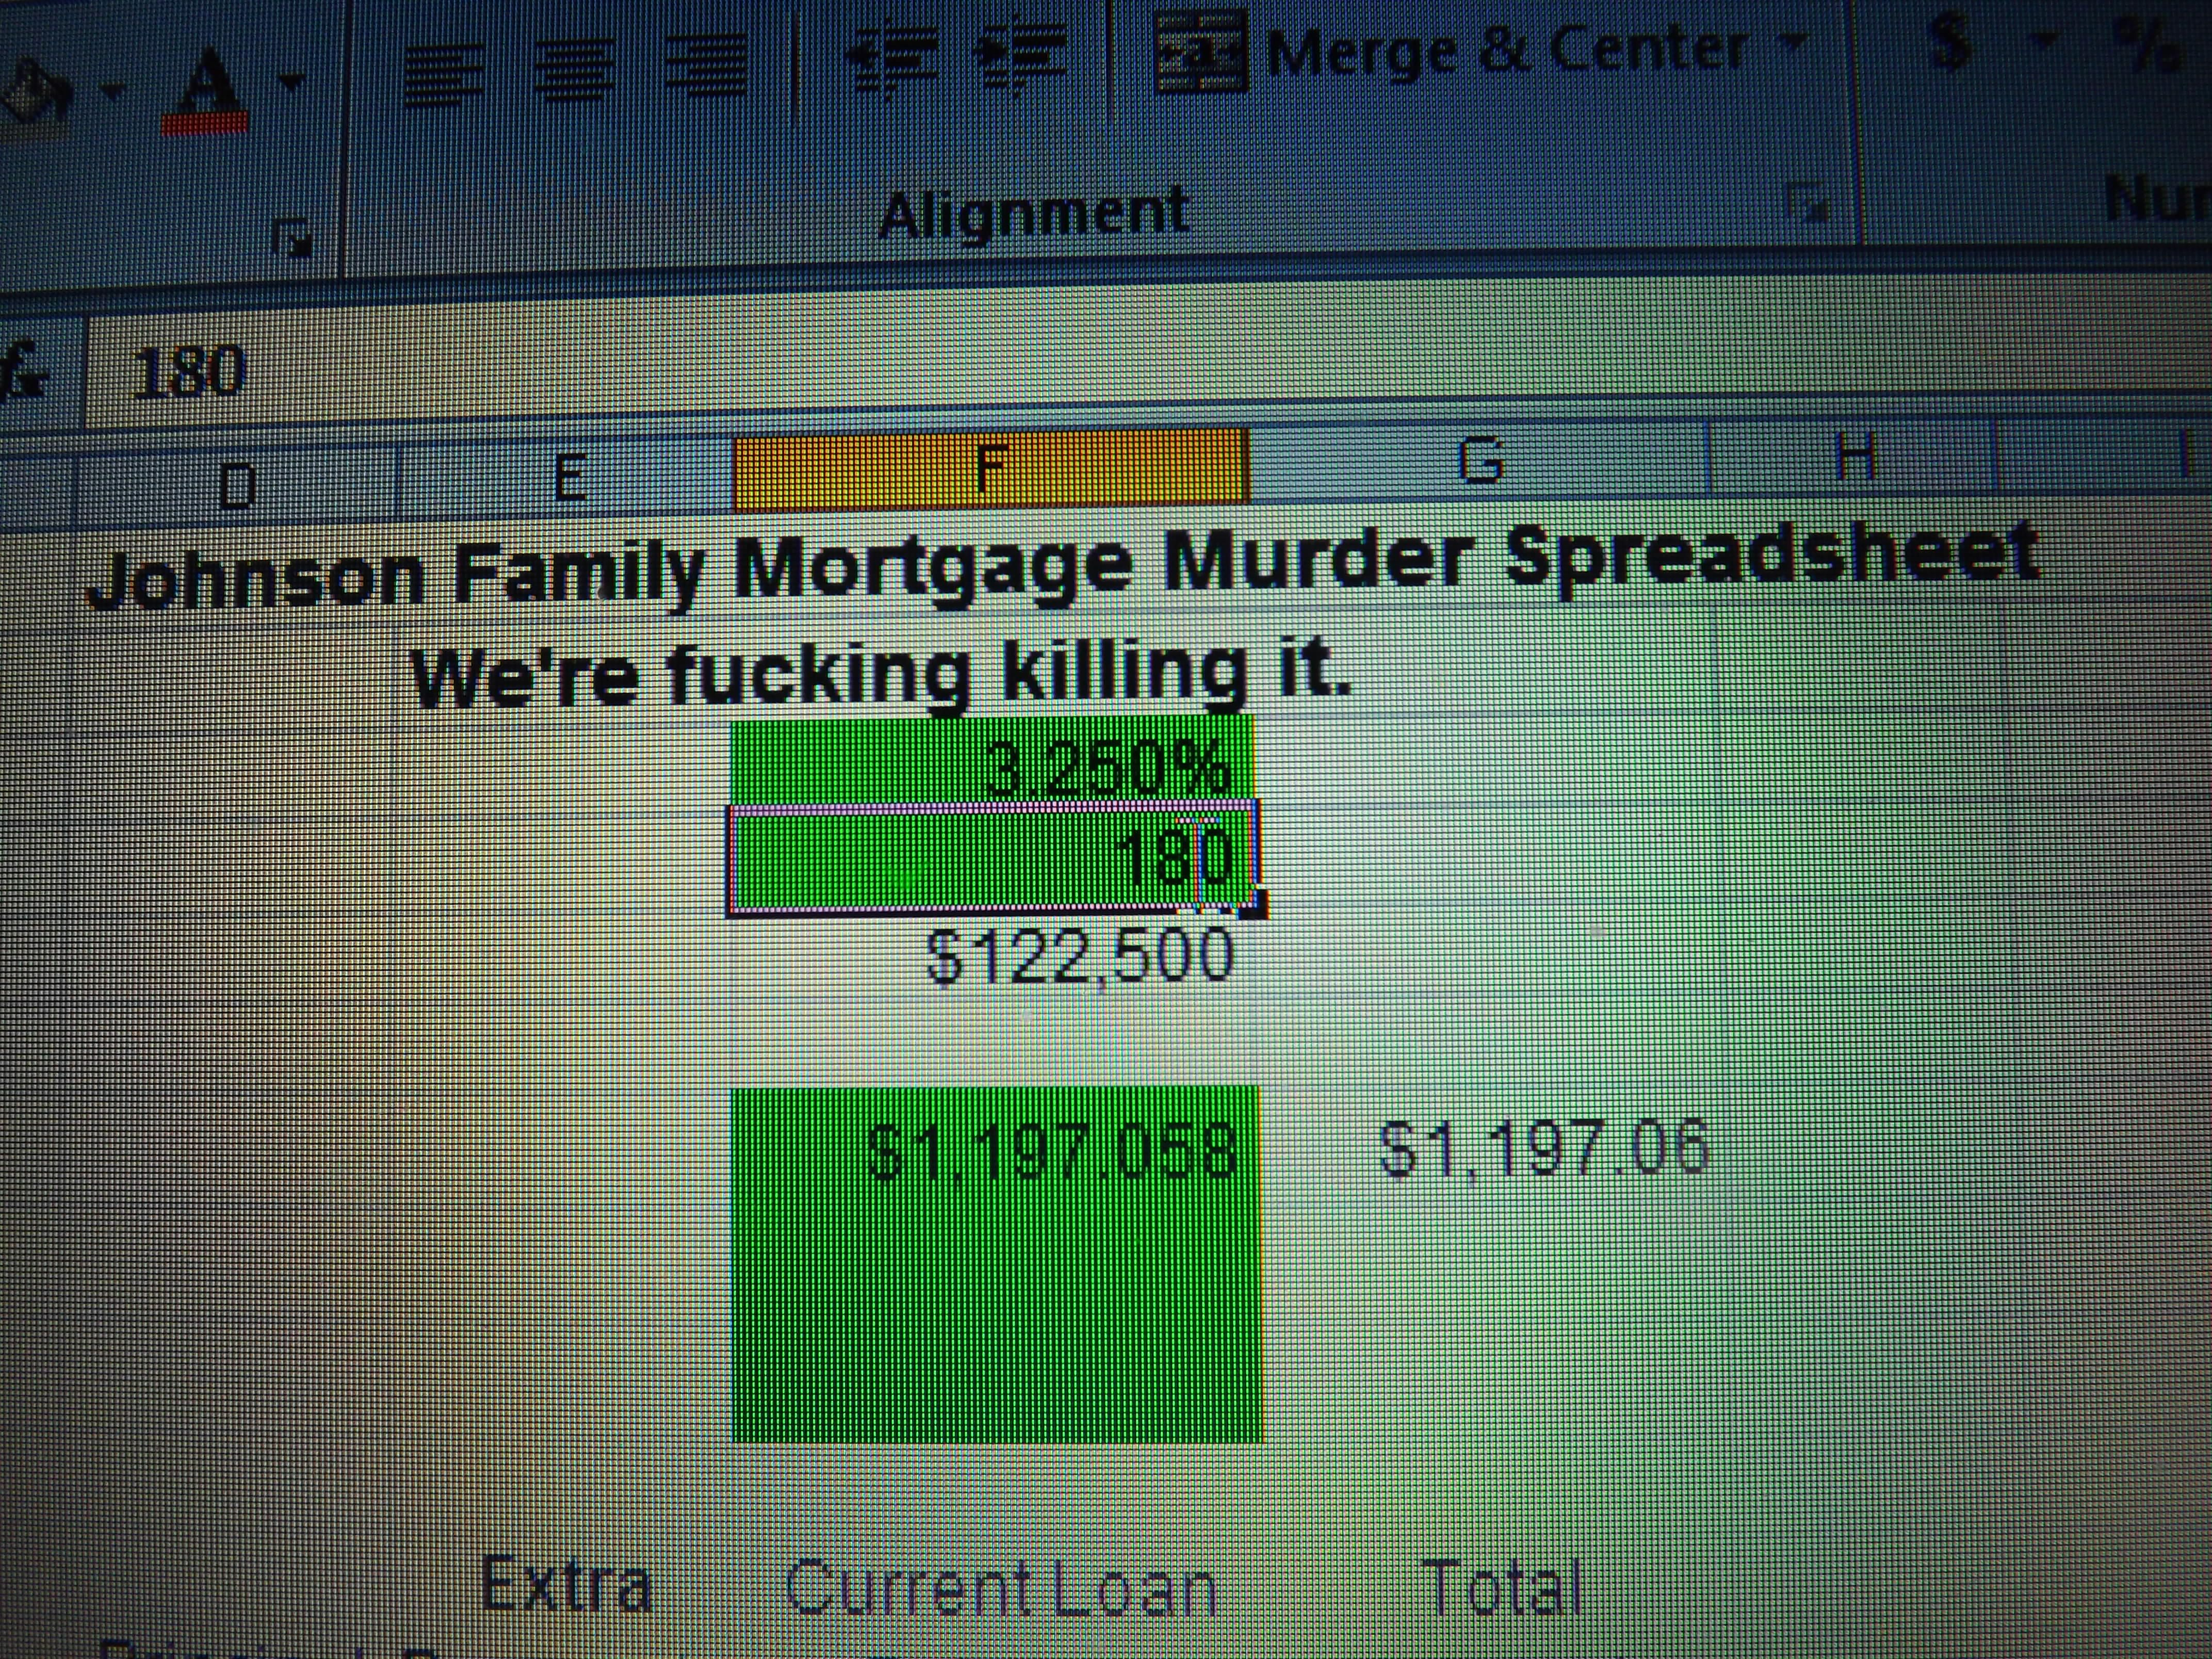 Reasons IM Killing My Mortgage  Mortgage Payment Calculator